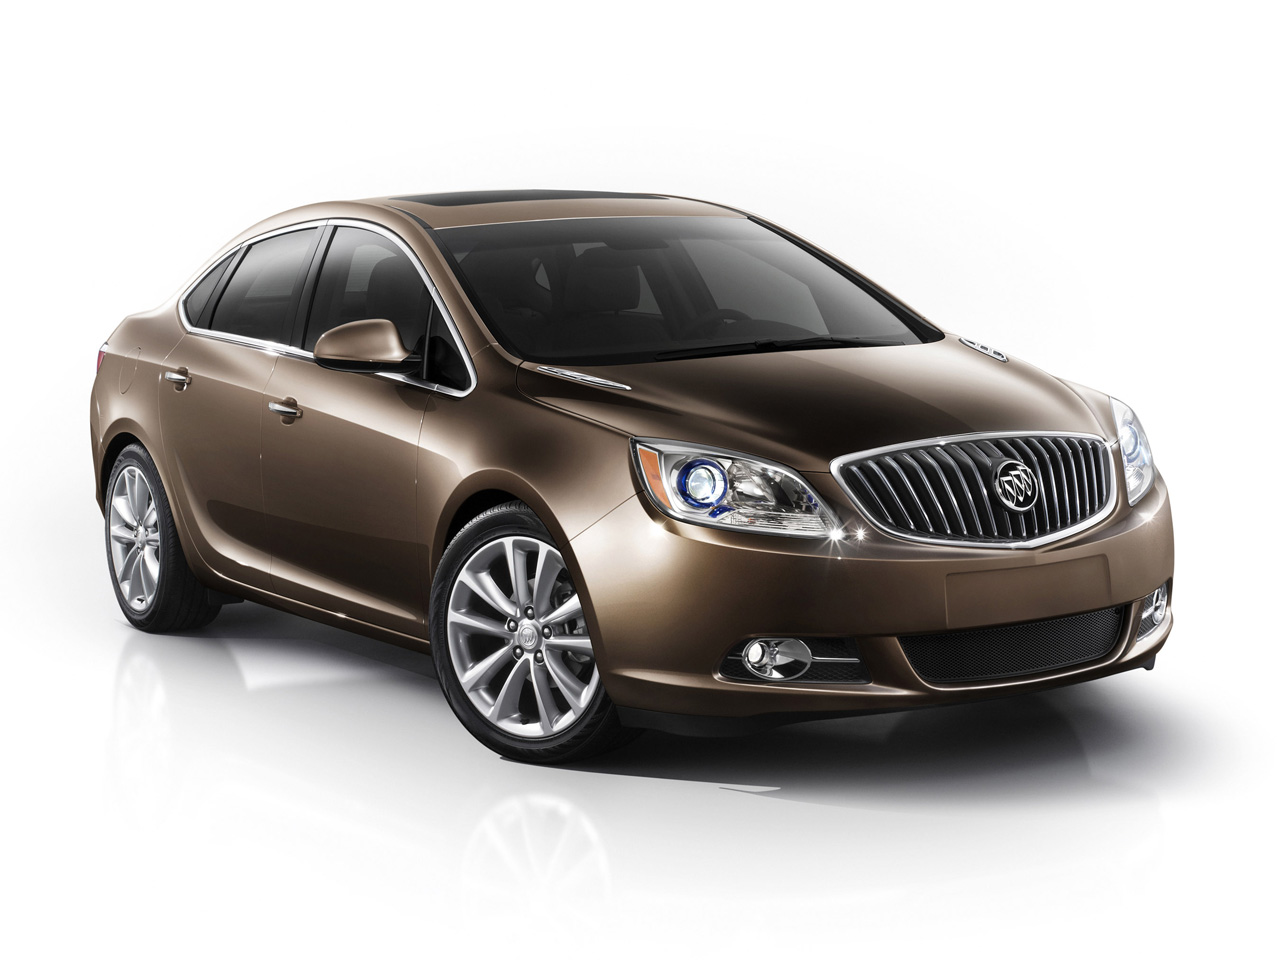 [Image: 13-2012-buick-verano.jpg]